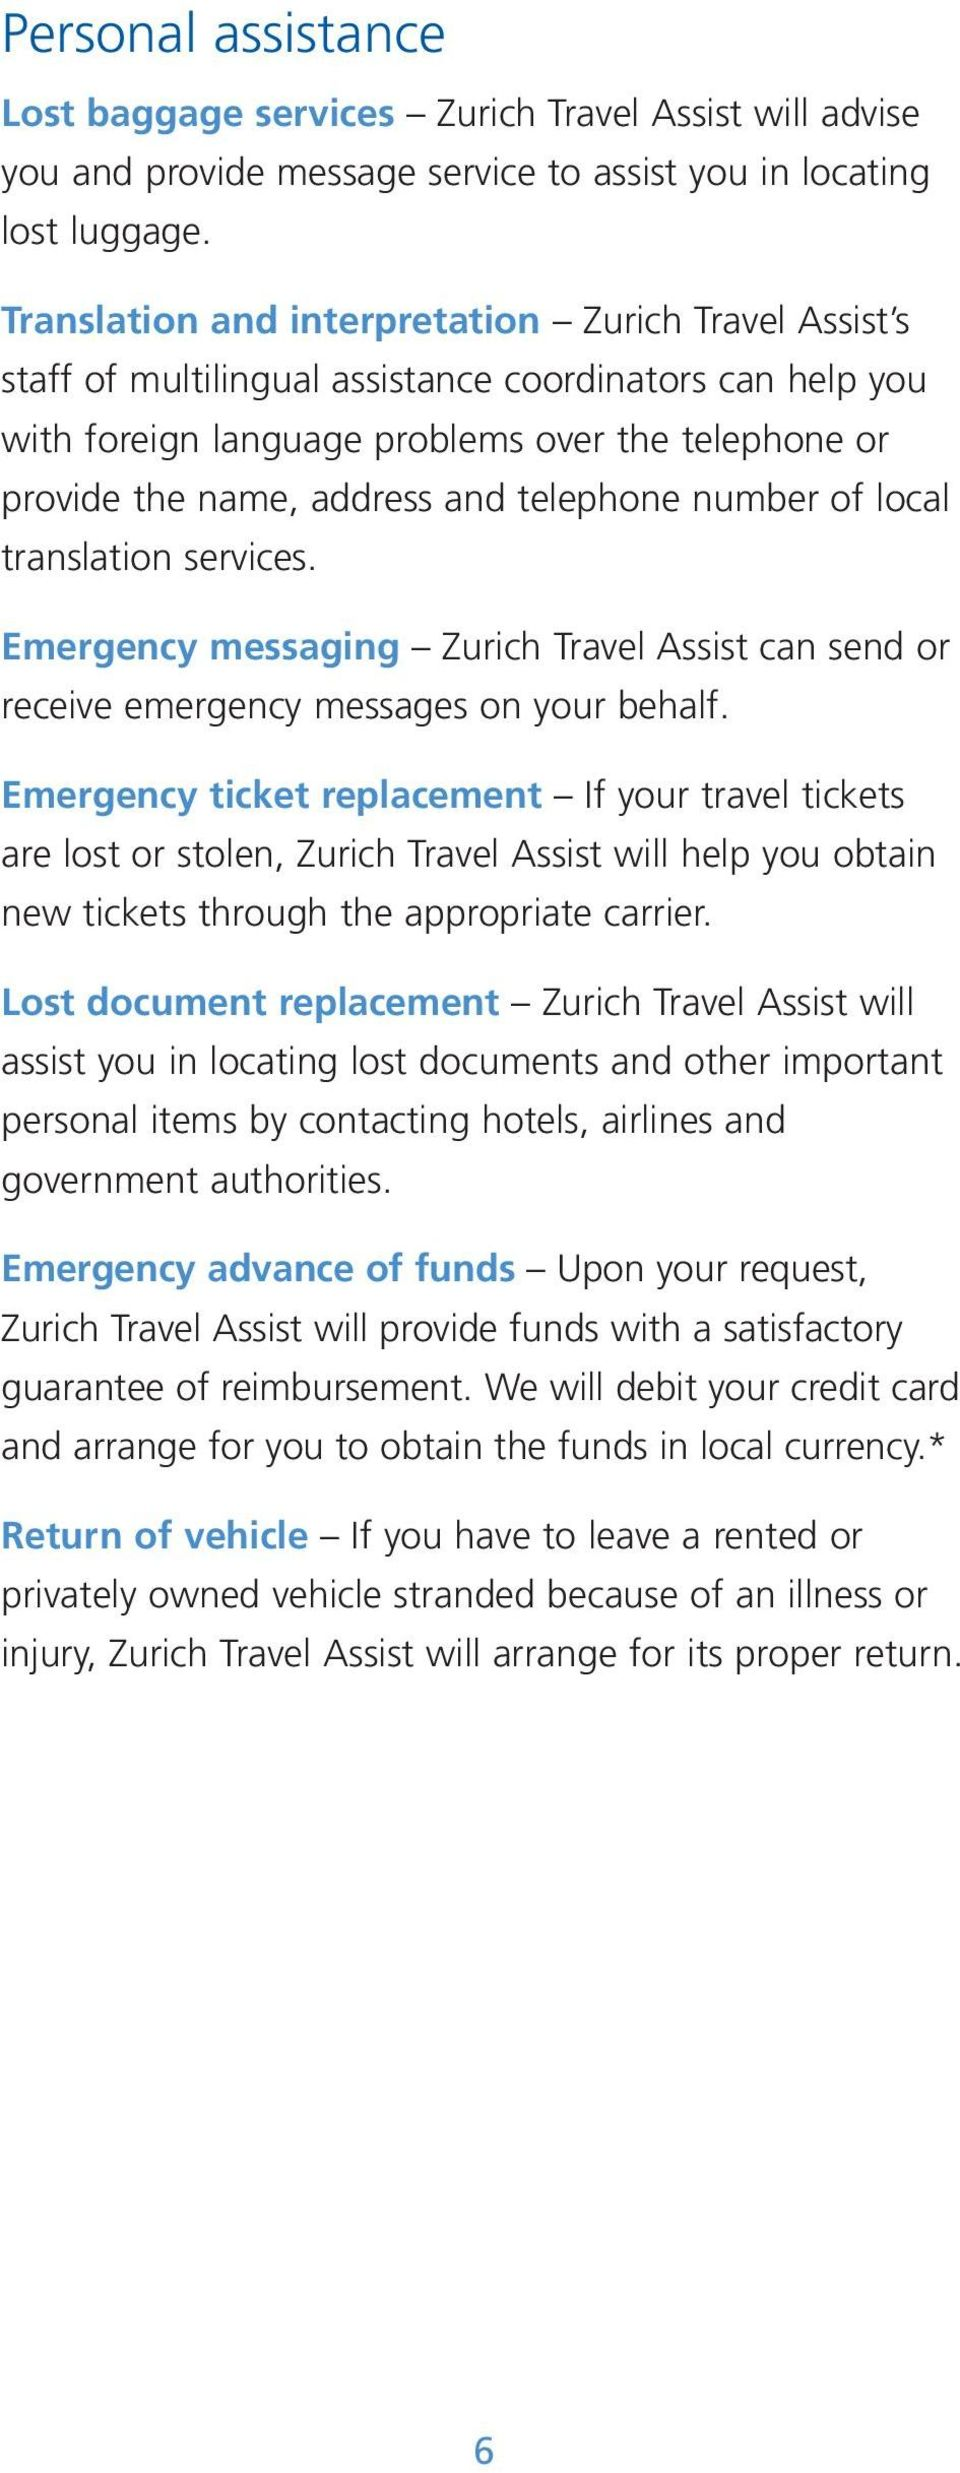 telephone number of local translation services. Emergency messaging Zurich Travel Assist can send or receive emergency messages on your behalf.